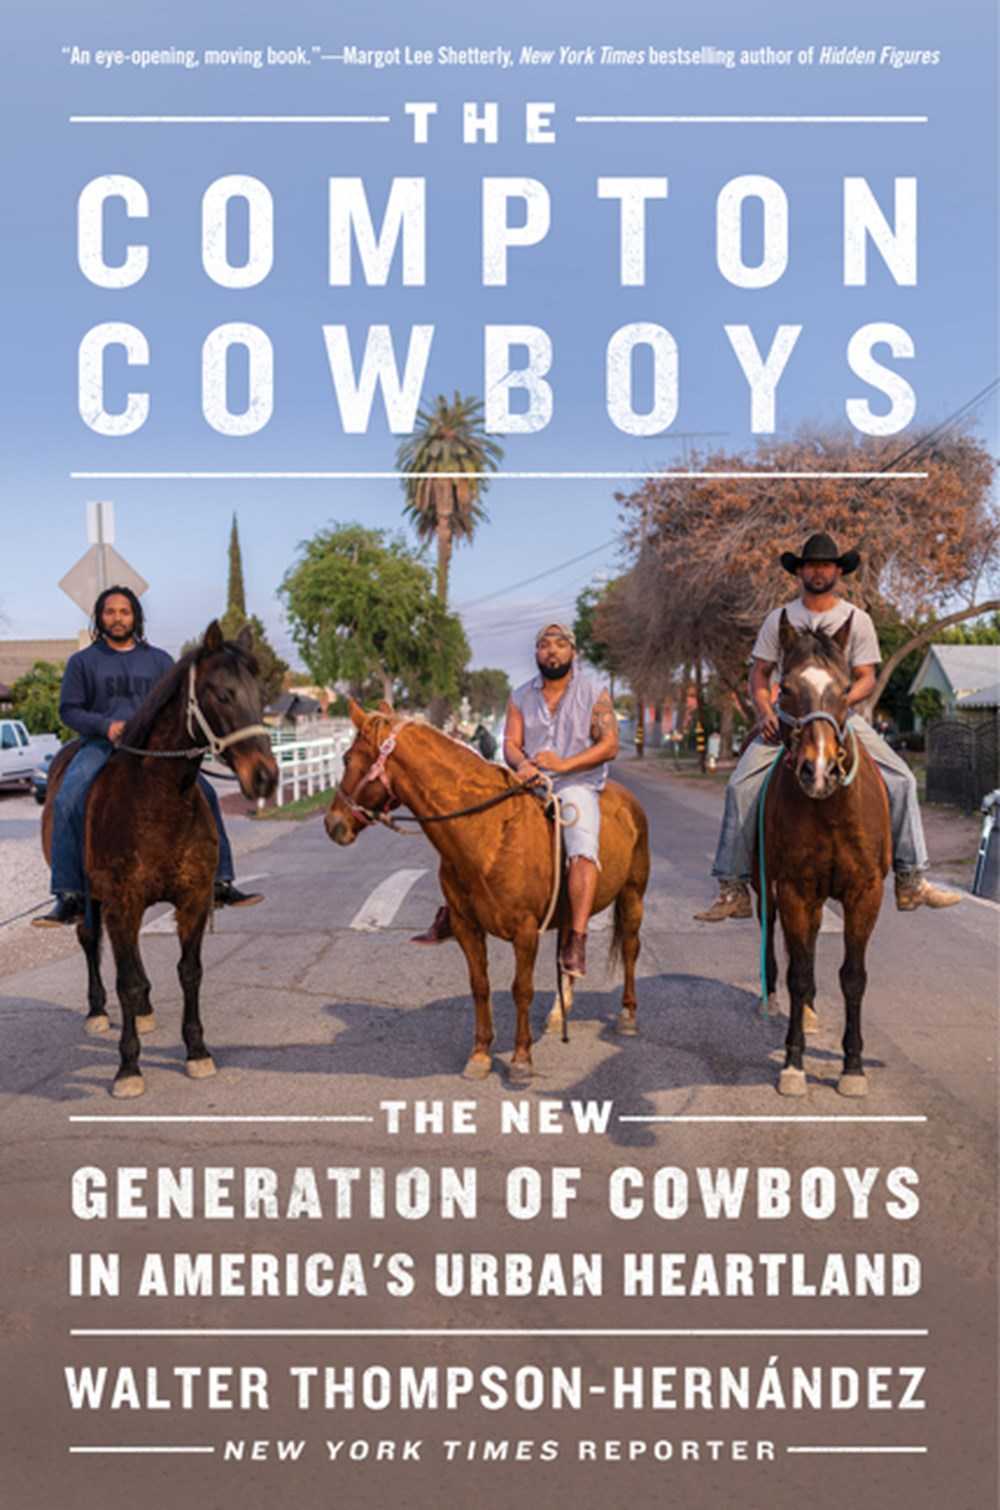 Compton Cowboys The New Generation of Cowboys in America's Urban Heartland